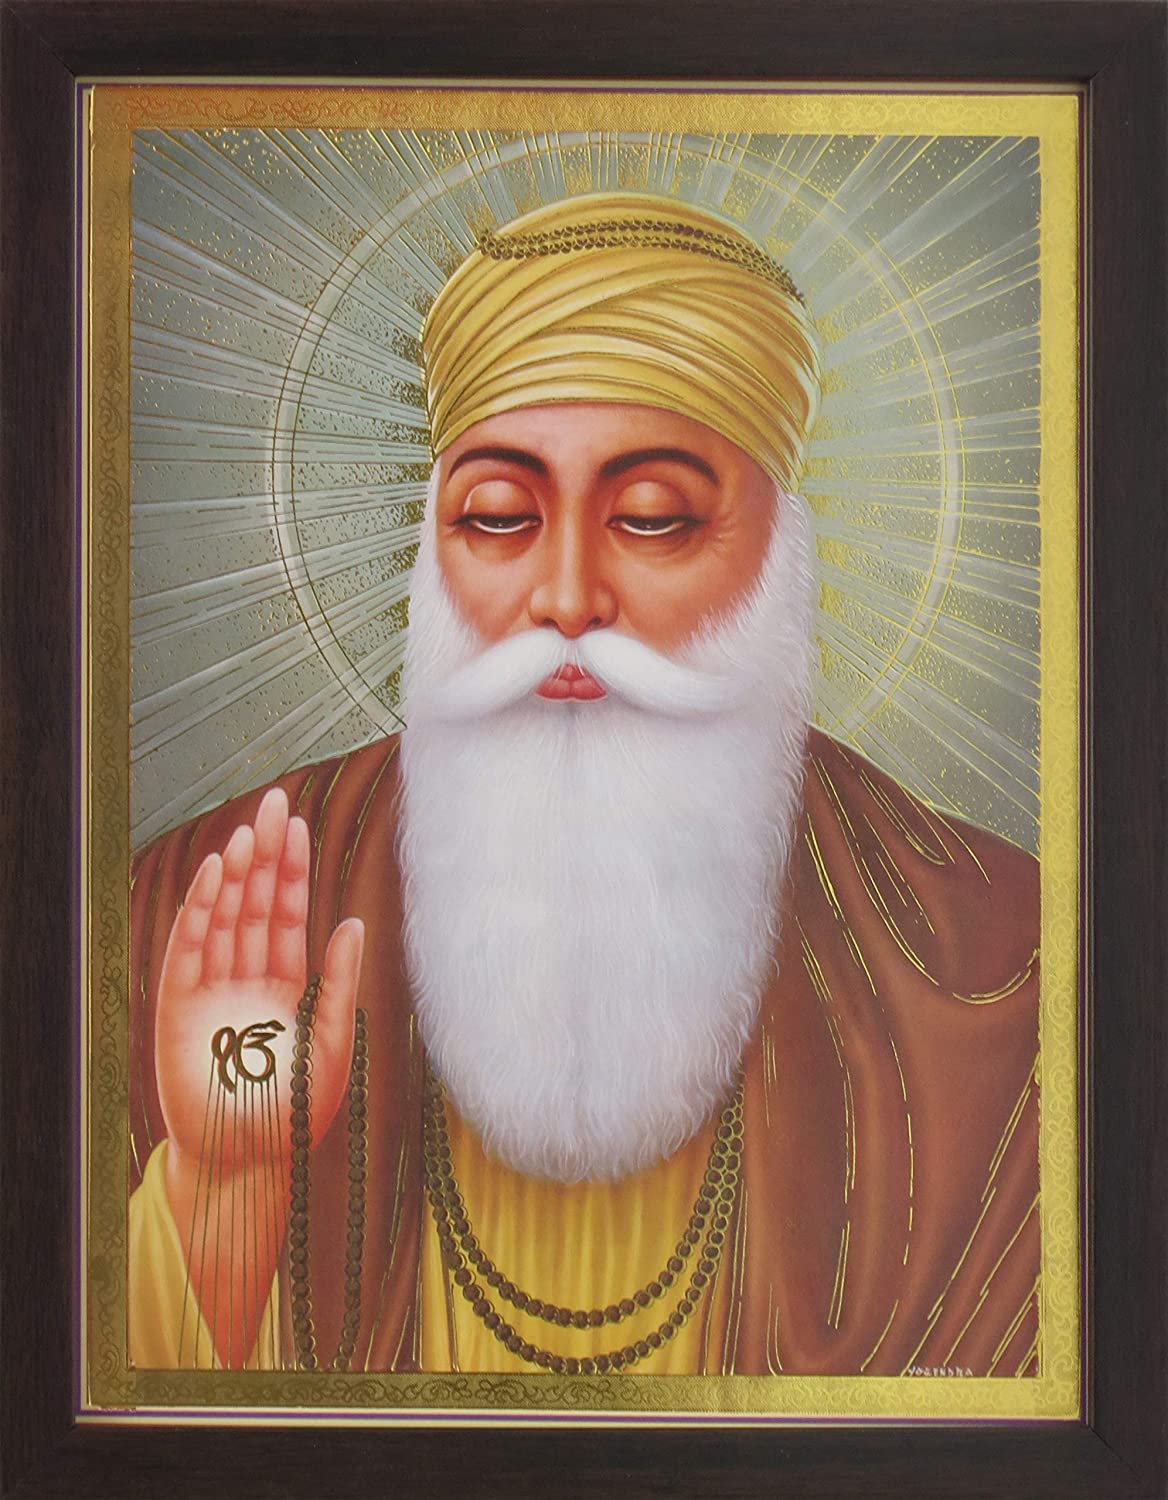 Handicraft Store Gurunanak Dev Ji Giving Blessings with ekumkar Symbol in Hand, A ポスタープリント フレームギフト Sikh Auspicious purpose. 縁起の良いギフトアイテム。   B07MDKXF9L